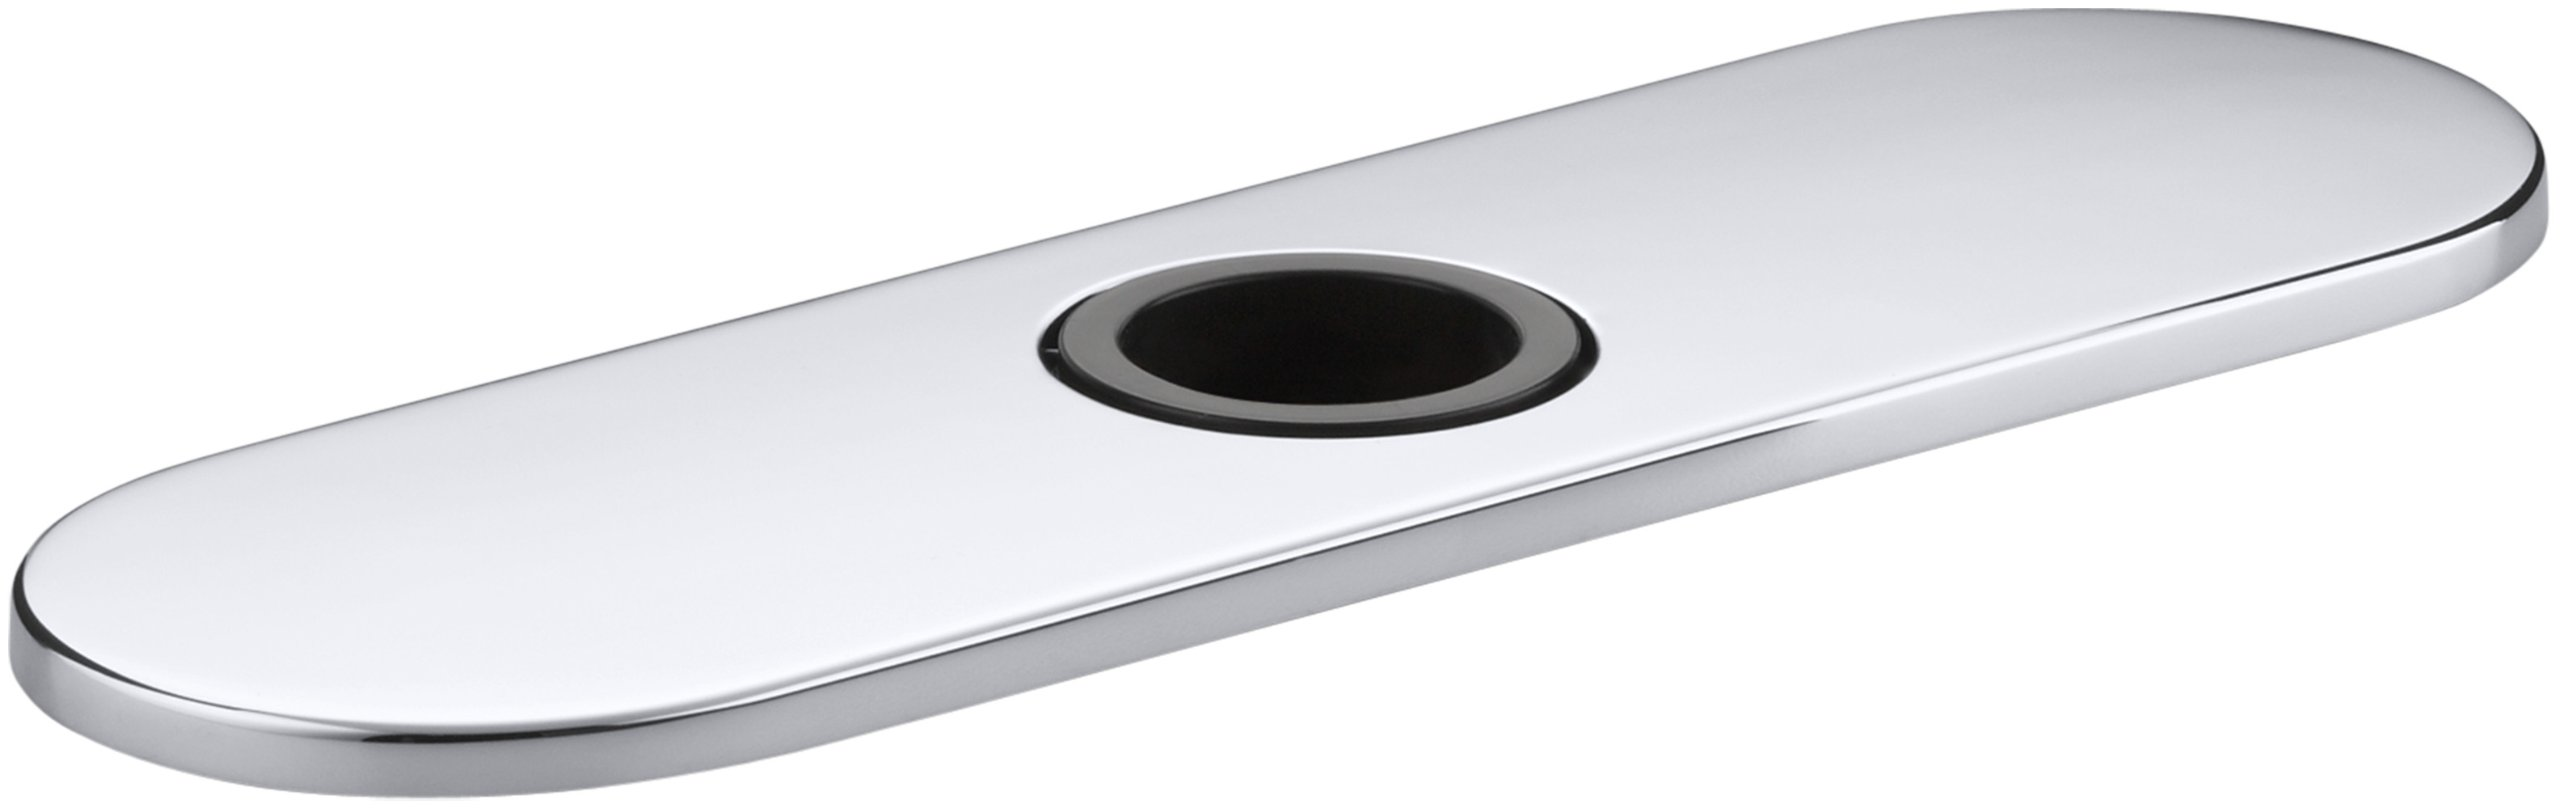 Kohler K-13479-A-CP Optional 8'' Escutcheon Round Plate for Insight Faucet, Polished Chrome